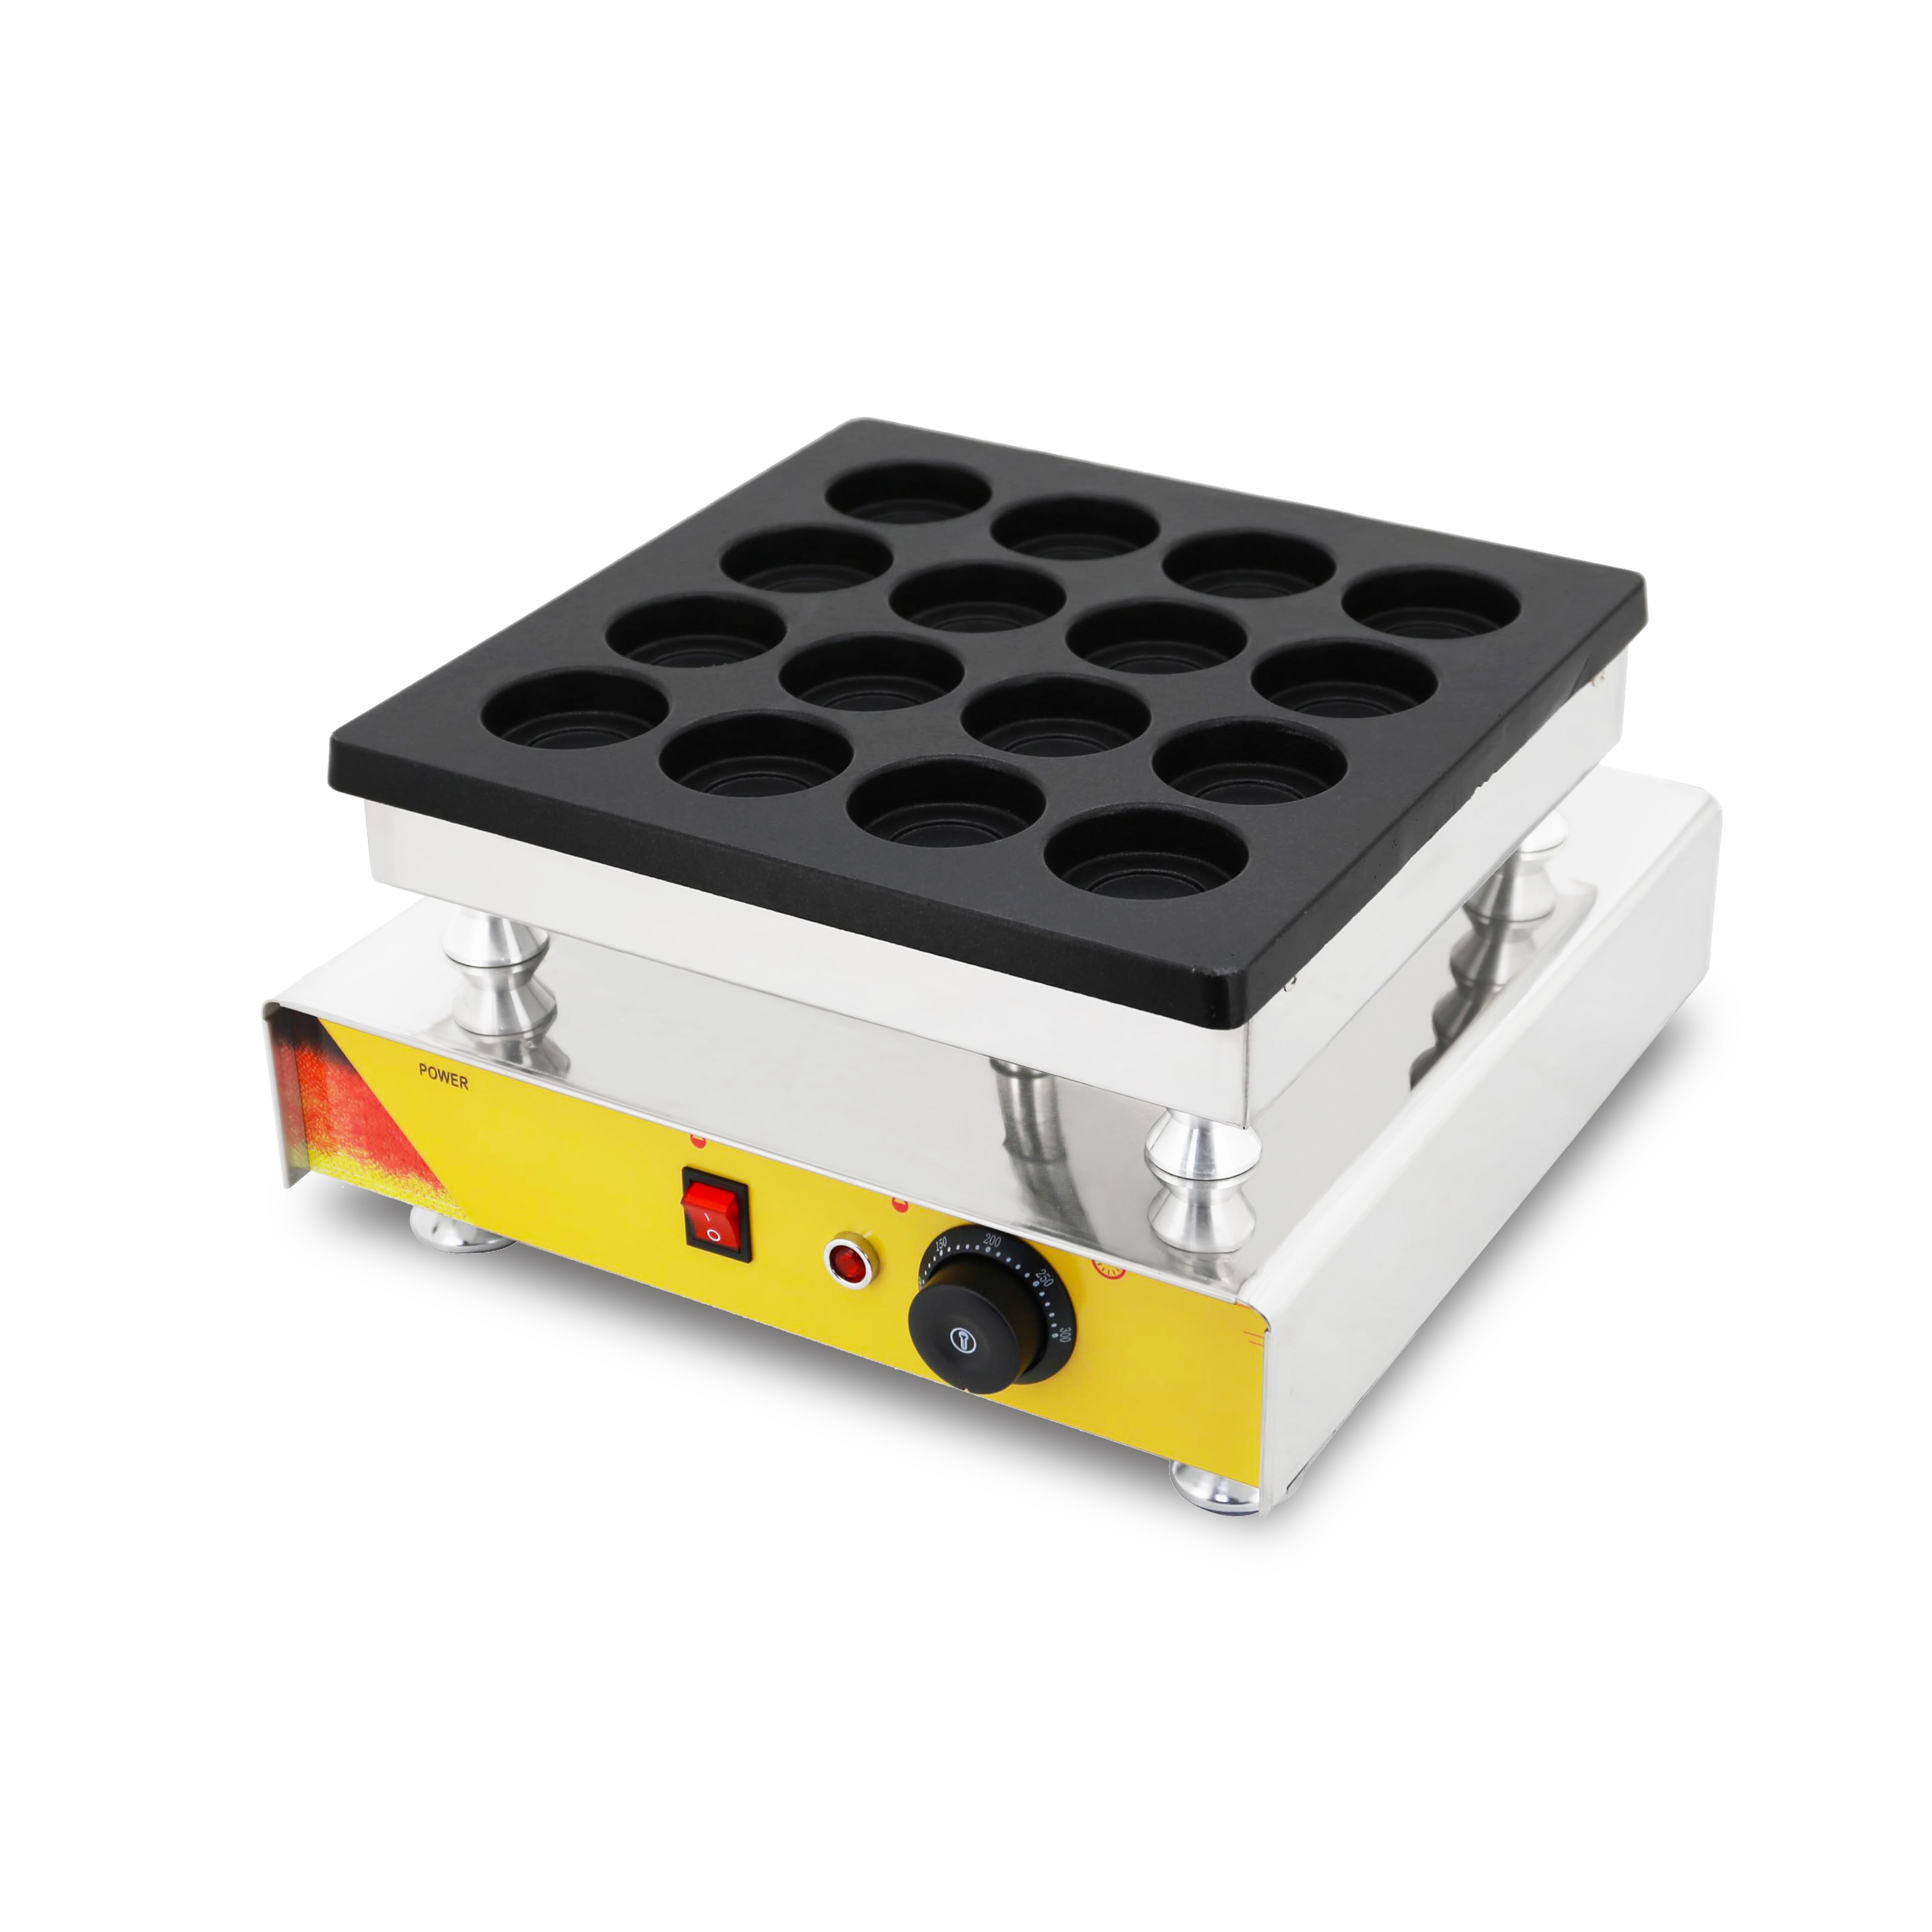 16 Hole Commercial Taiwan Red Bean Cake Wheel Machine  Automatic Wheel Cake Making Machine Pie Maker Snack Equipment With CE недорого